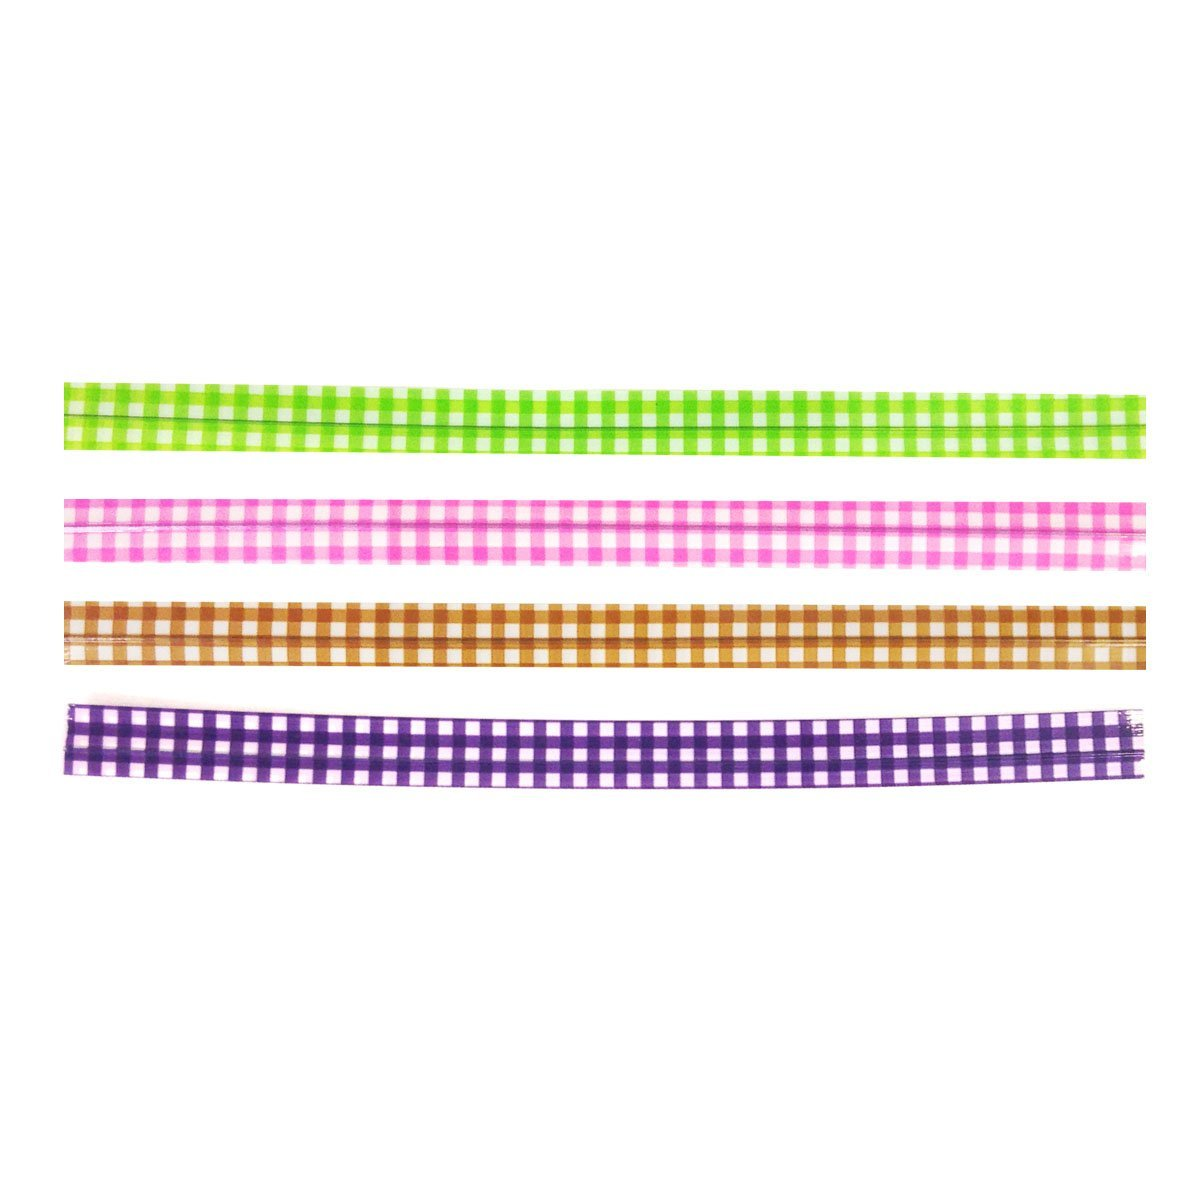 "Wrapables 200pcs 4.75"" Twist Ties with 20 Scalloped Gift Tags for Baked Goods, Cake Pops, Party Favors"